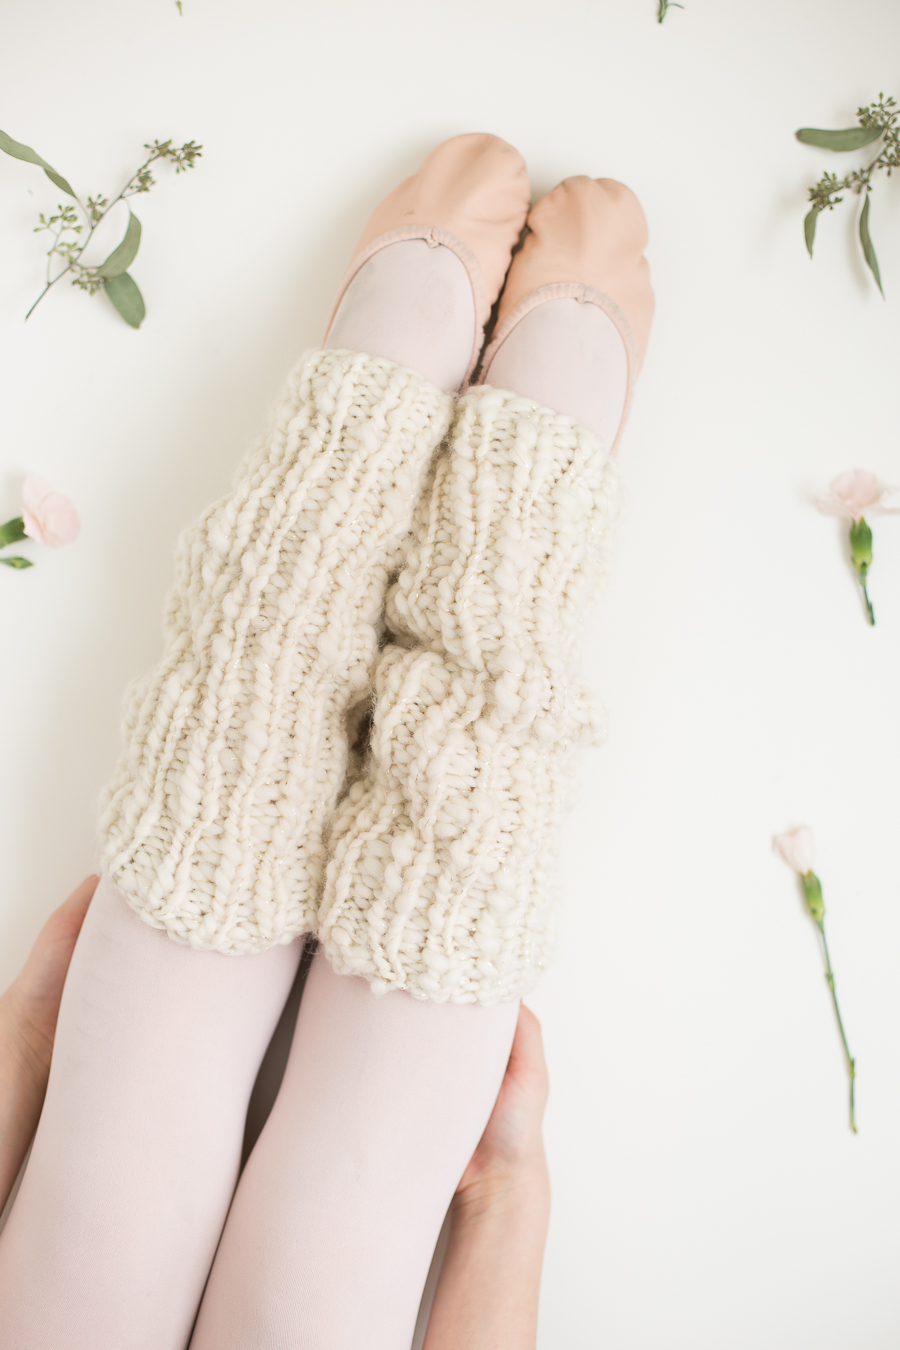 One Skein Knit Leg Warmers Pattern for Beginners - Flax ...